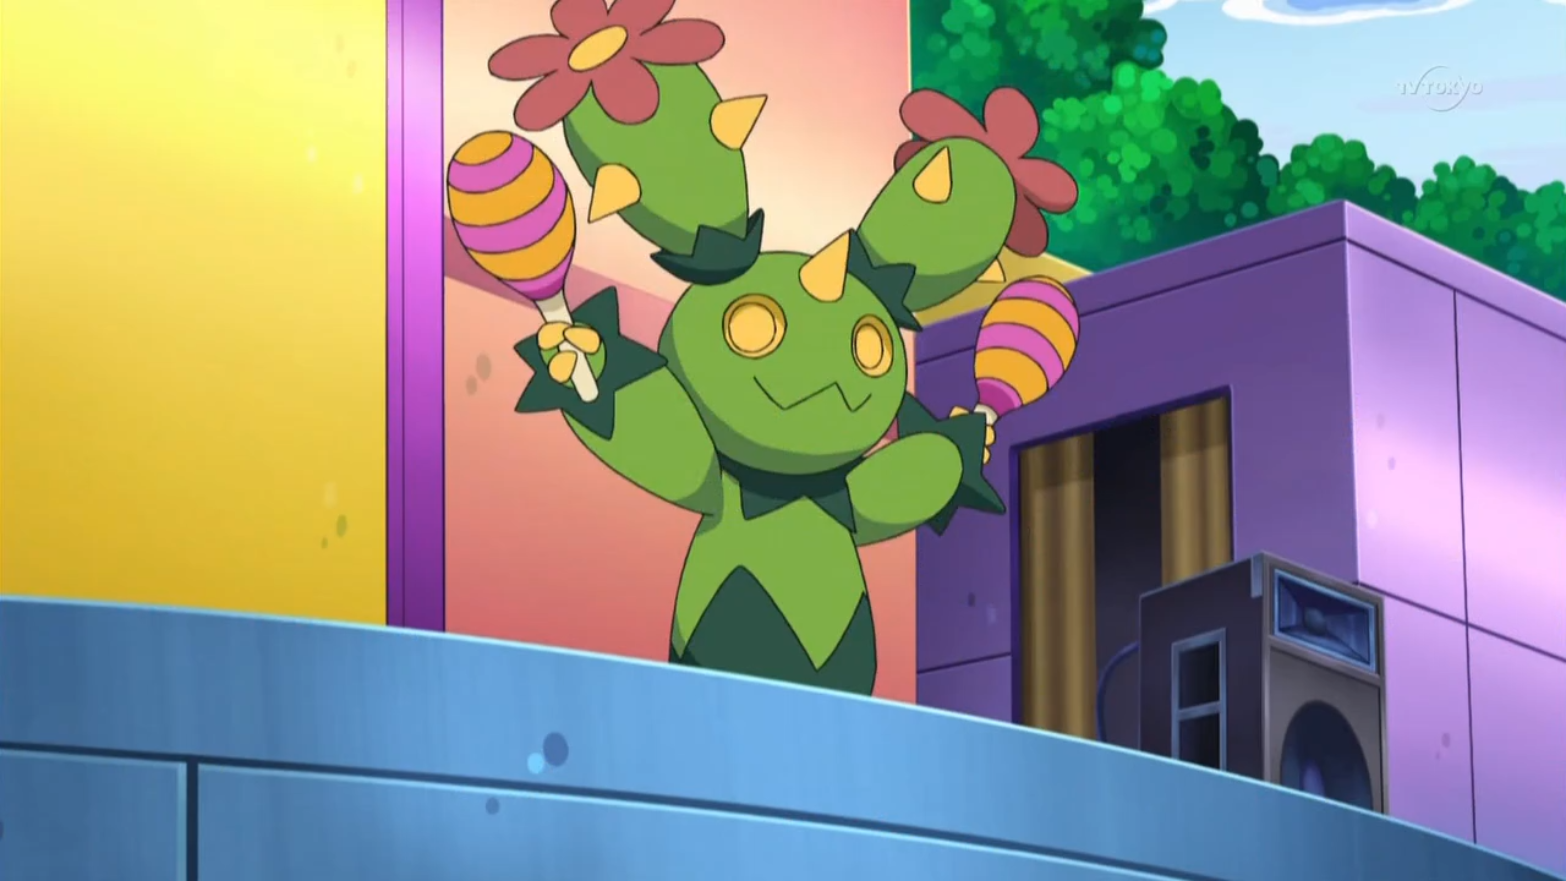 Racca is one of Toby's Maractus, who was used to perform in musicals.